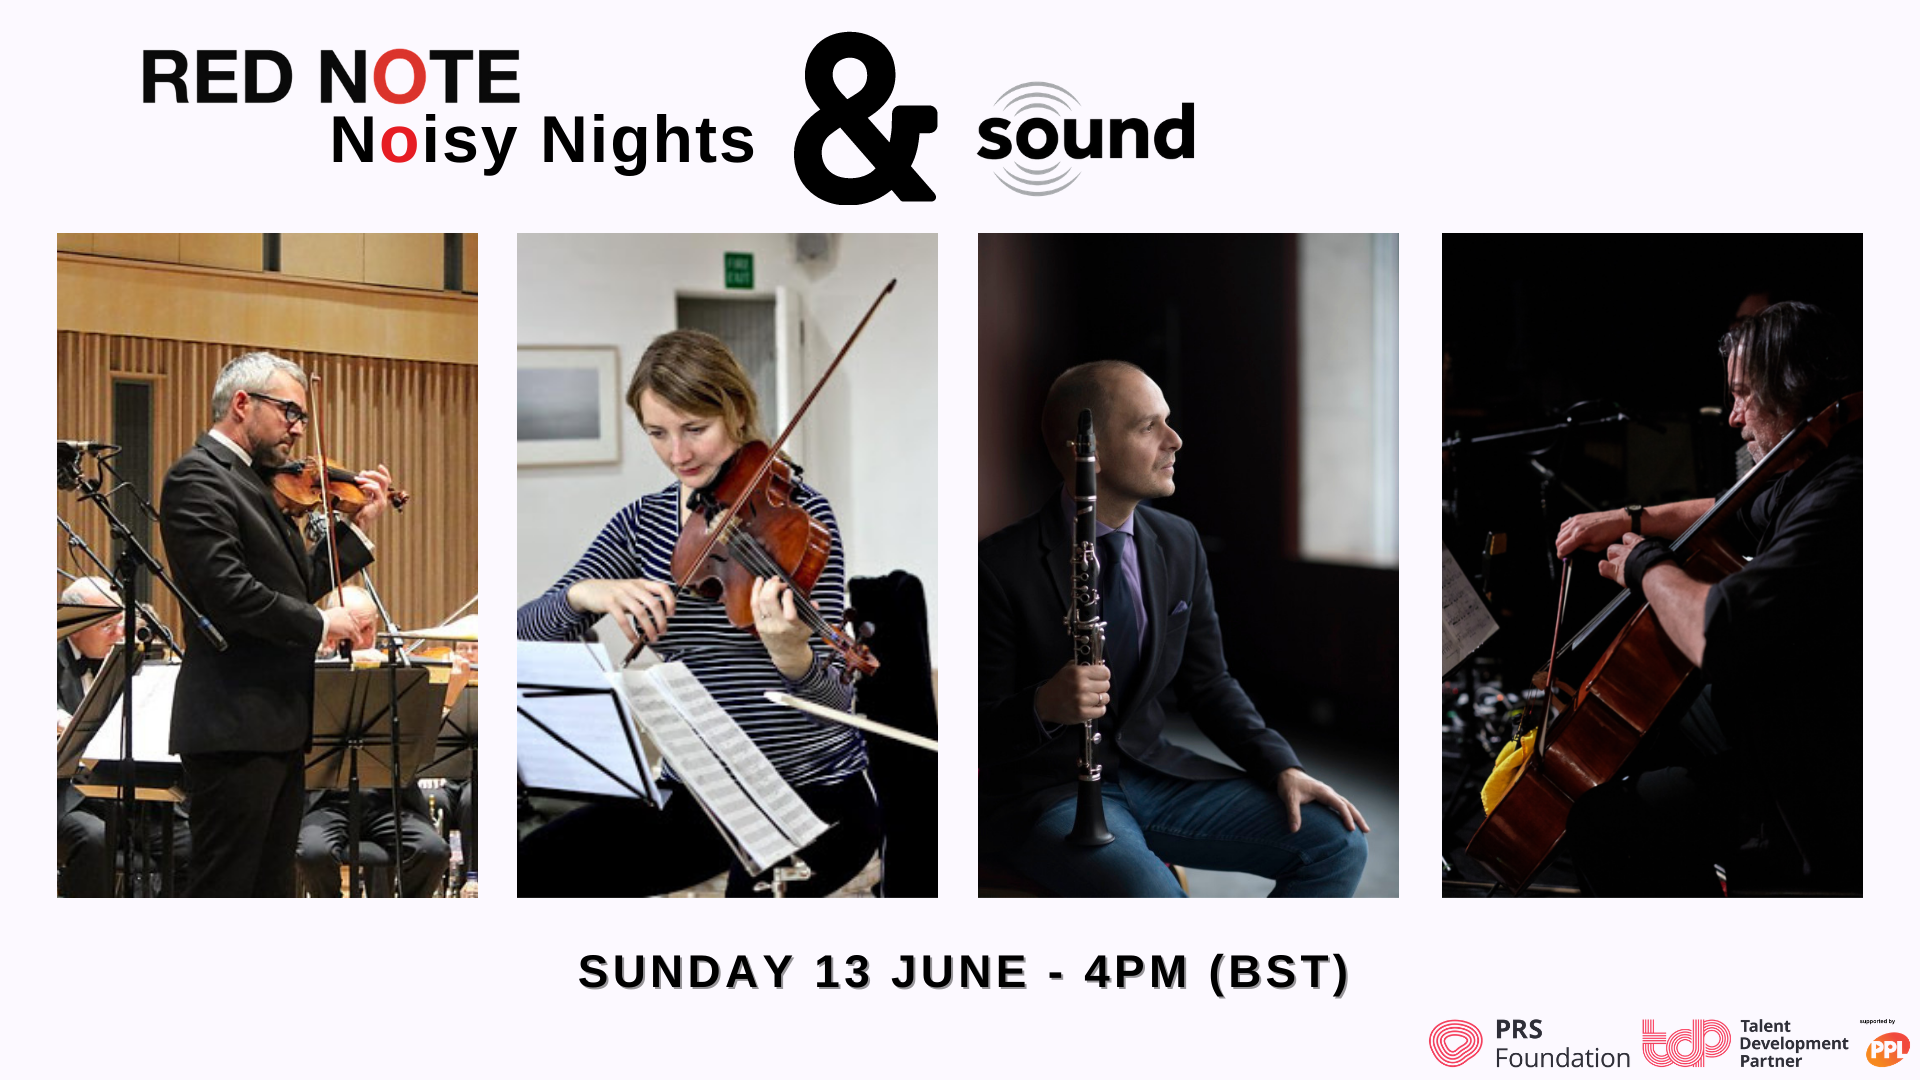 Noisy Nights at Sound. Four profile pictures of the musicians: Tony Moffat, Jessica Beeston, Maximiliano Martin and Robert Irvine. Sunday 13 June at 4PM. Supported by PRS Foundation - Talent Development Partner programme.